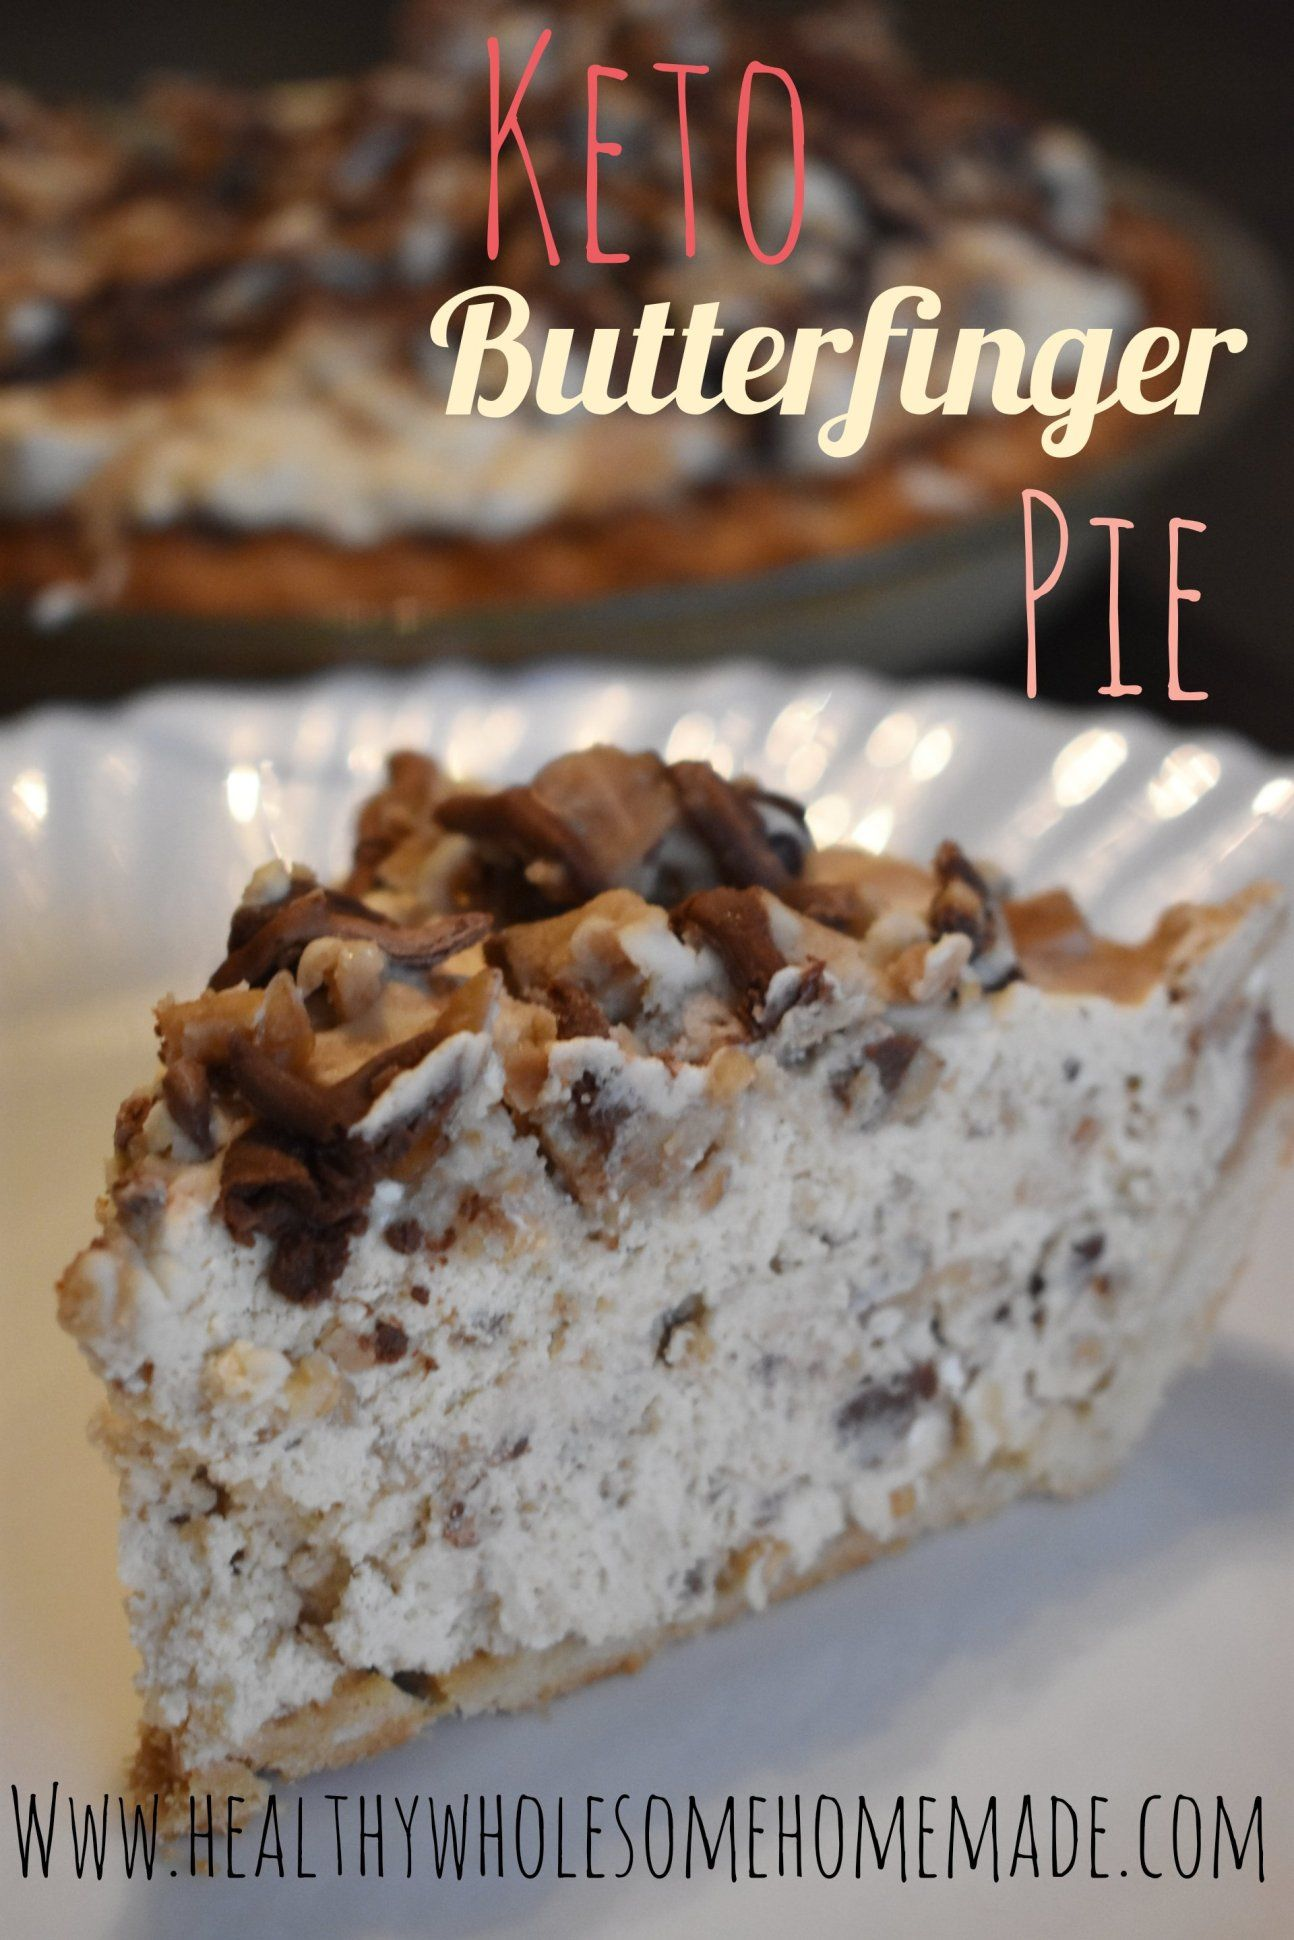 KETO BUTTERFINGER CRISPY CRUNCH PIE